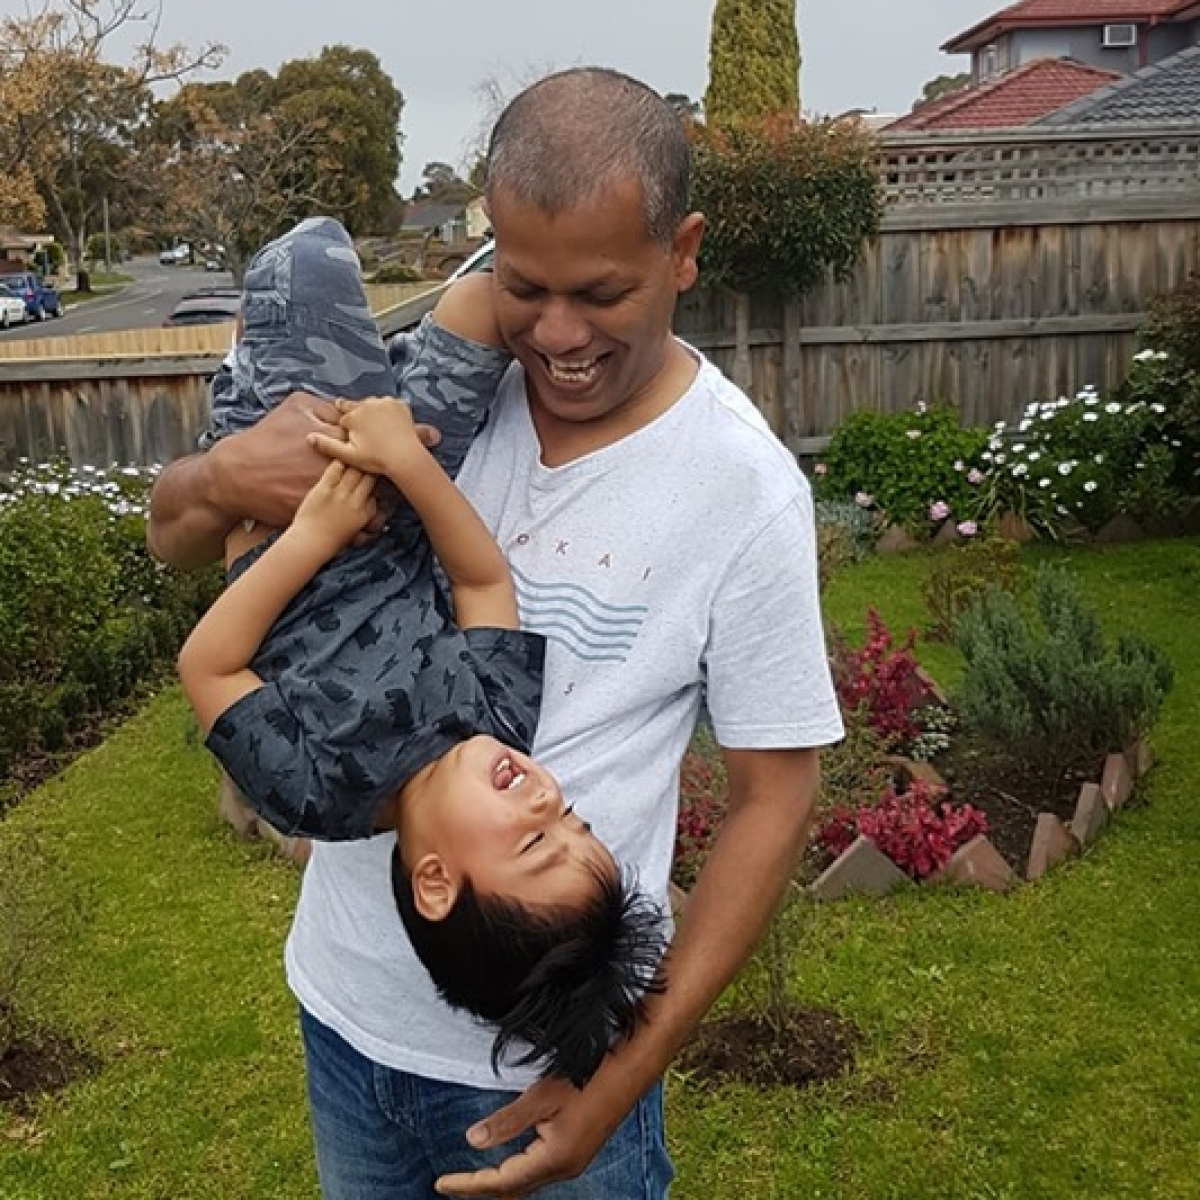 Most Likes: Preethi Sugath Fernando - Life is upside down except with Dad!